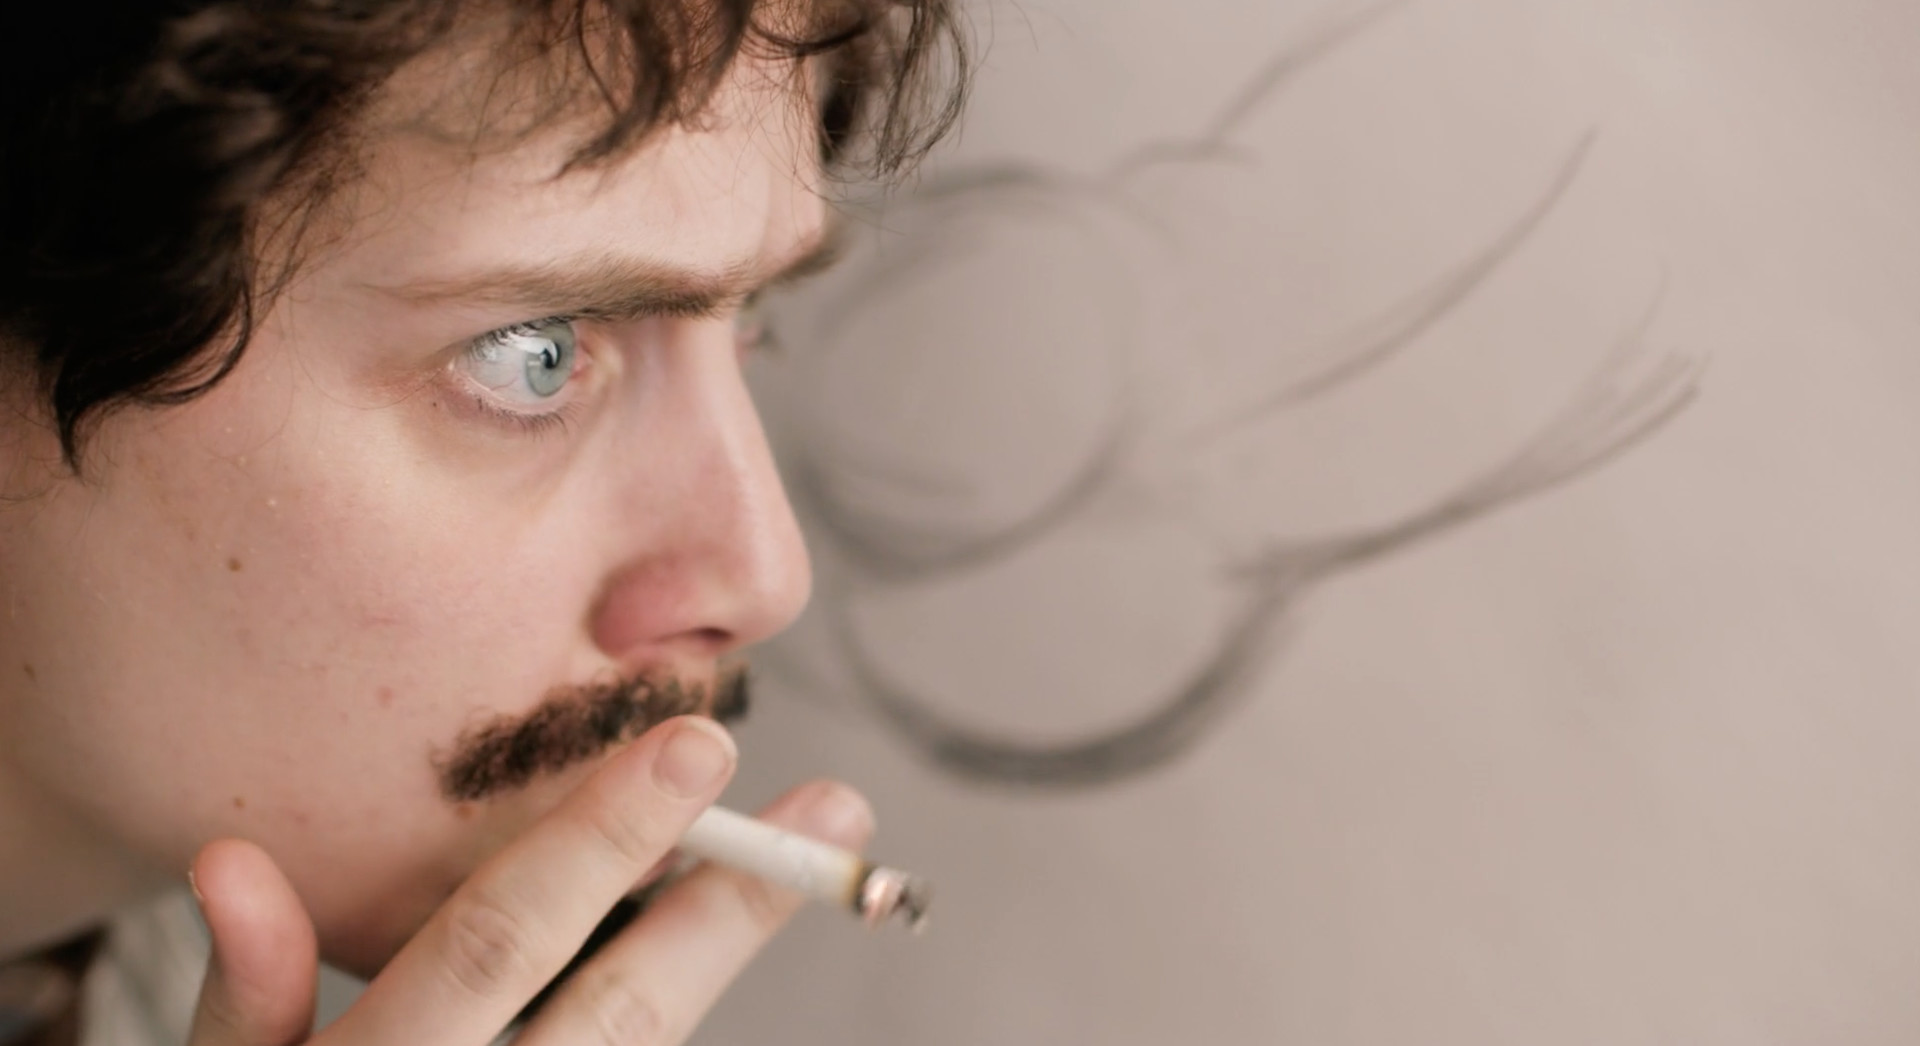 Photo 8 Francois_with_cigarette.jpg